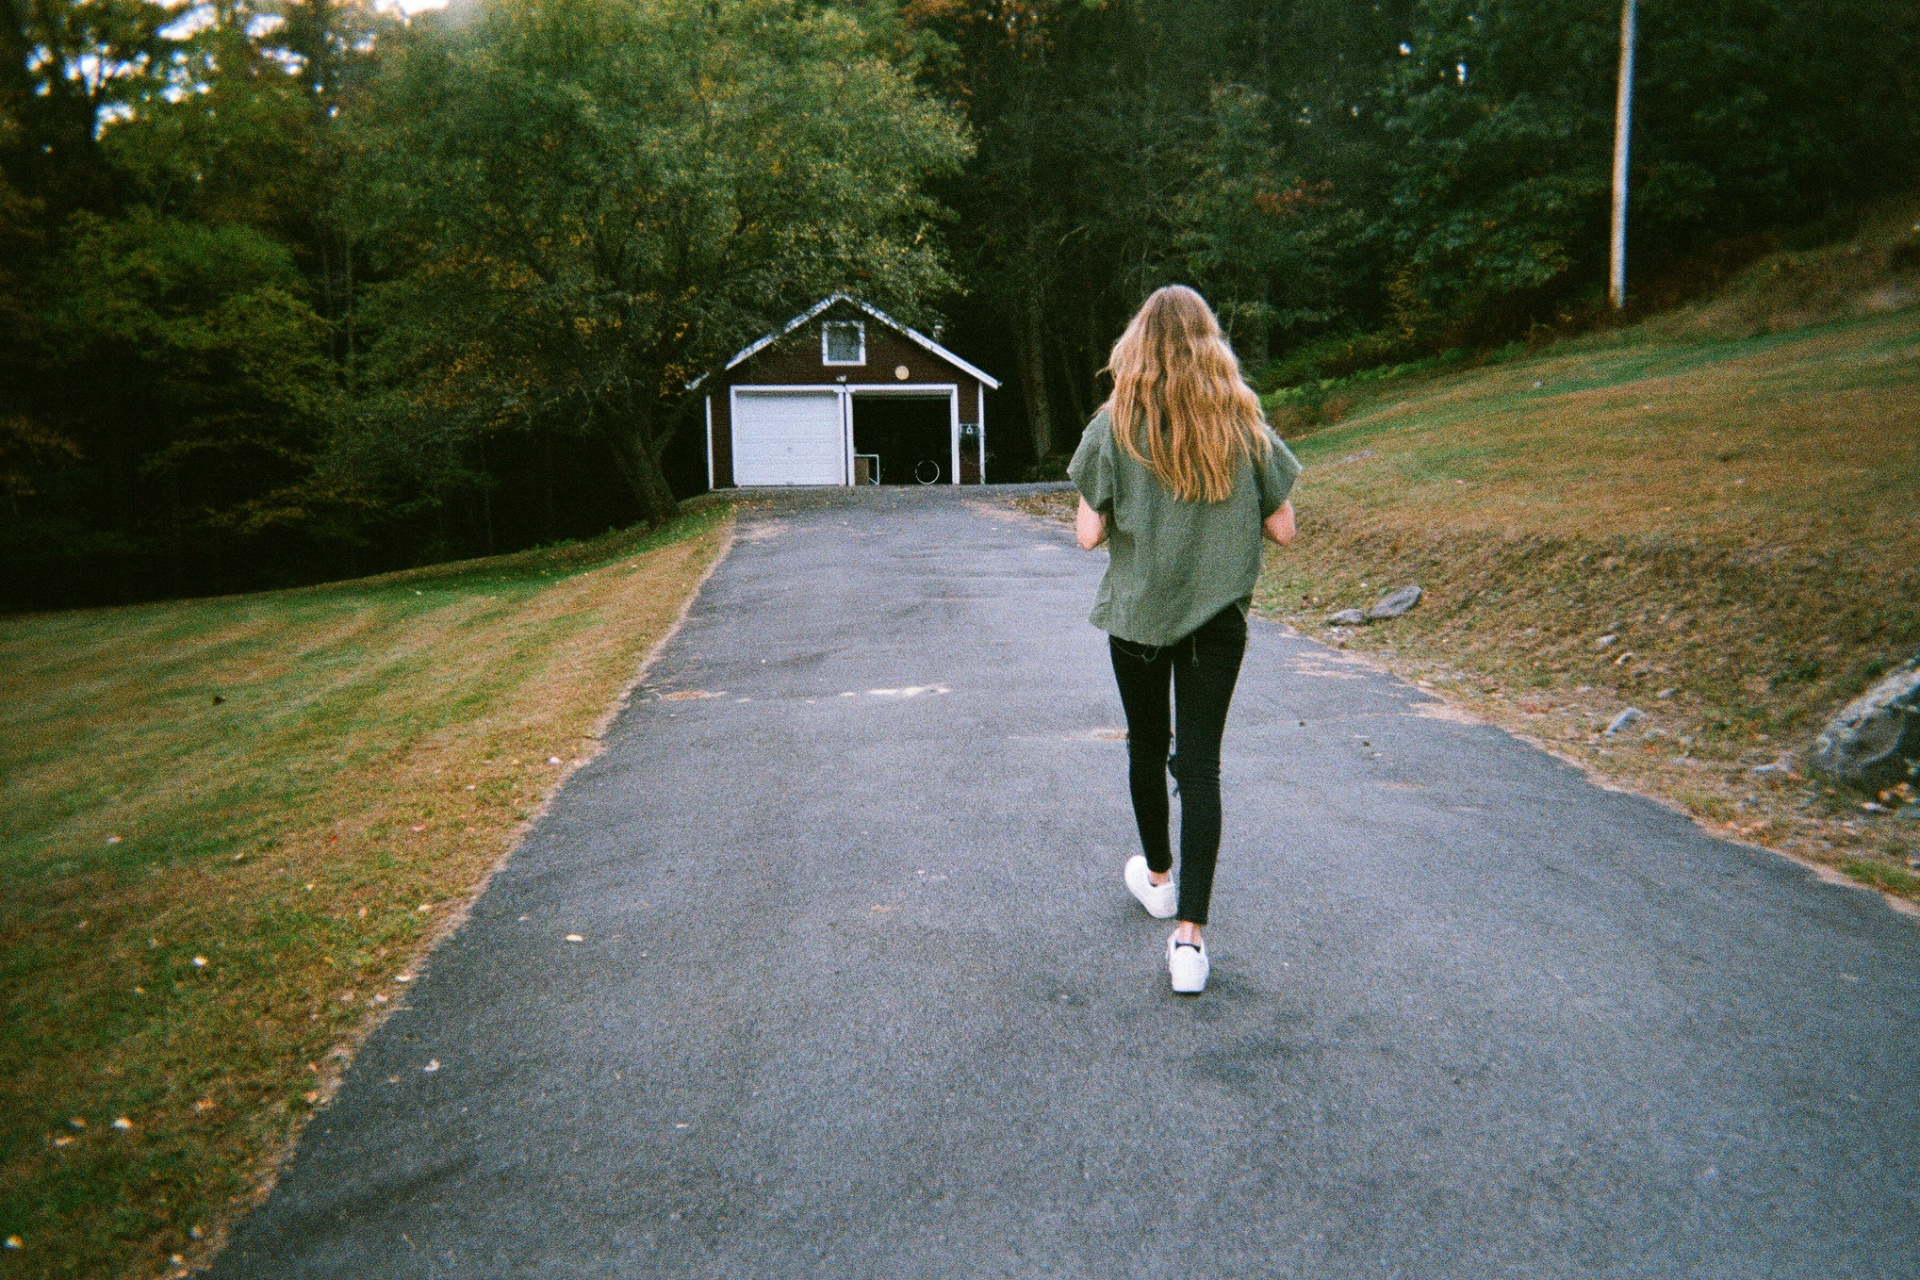 This Is How You Walk Away Even When You Don't Want To